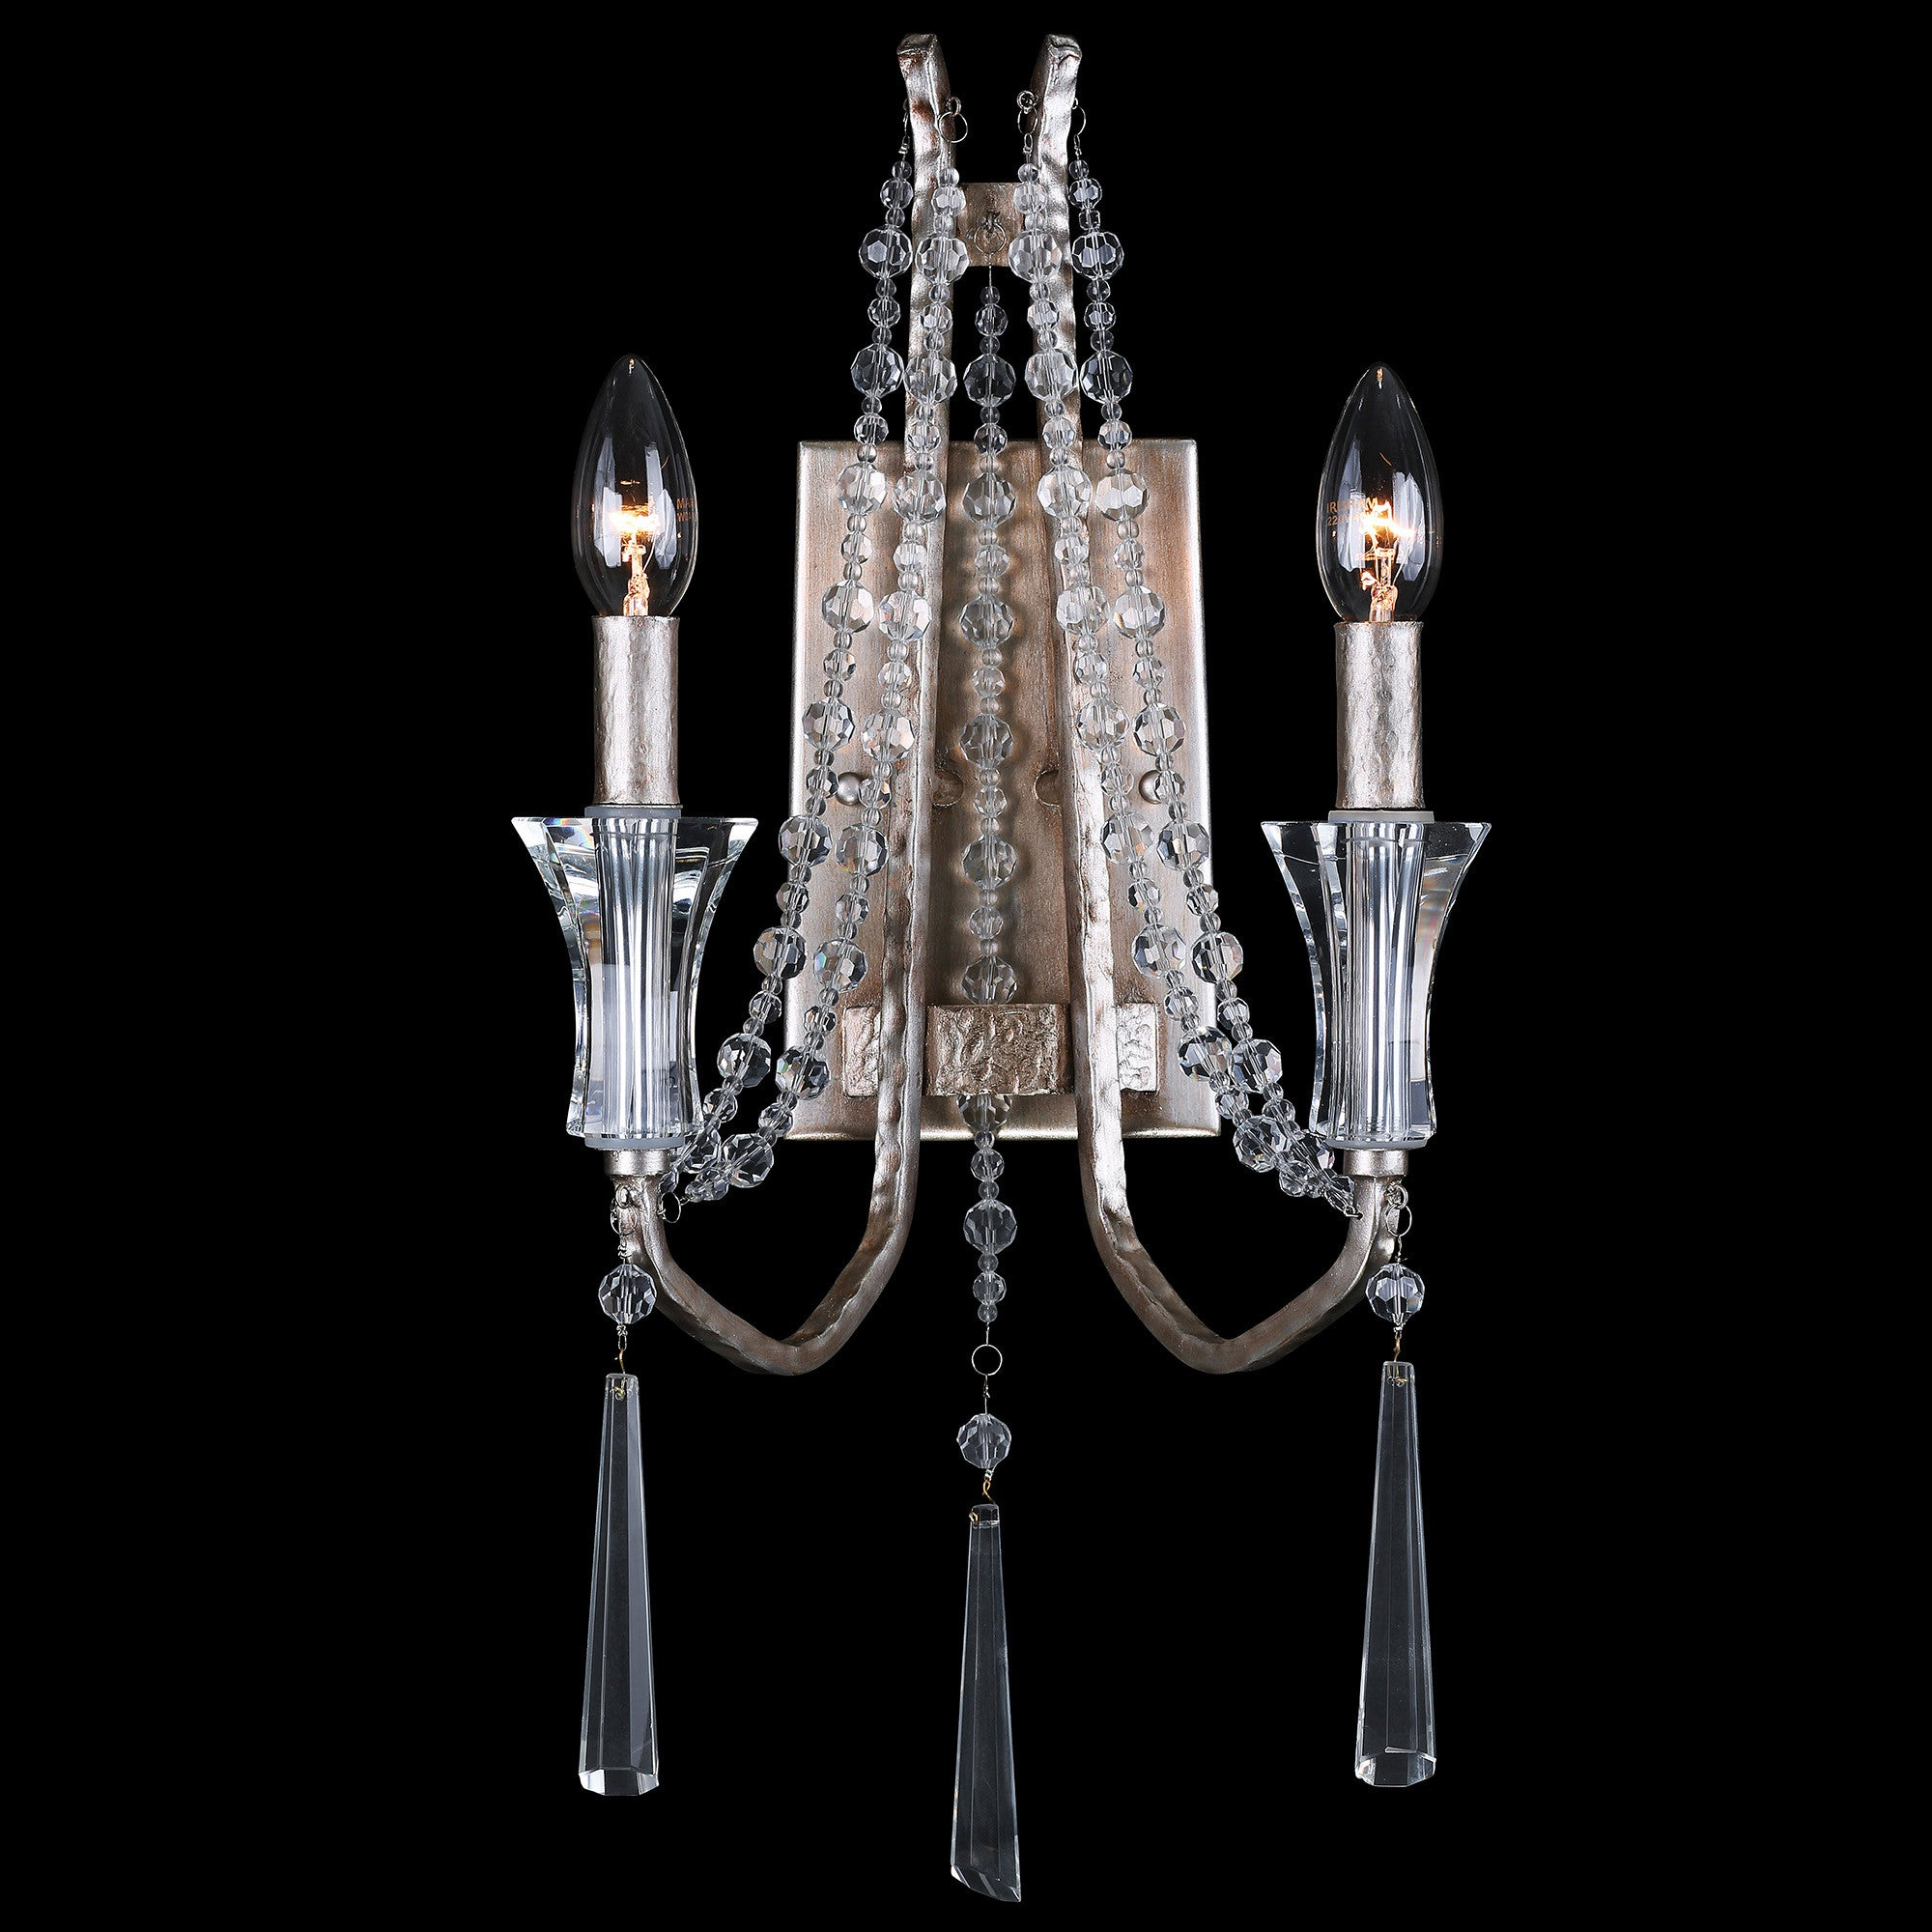 Barcelona 270W02TR 2-Lt Crystal Wall Sconce